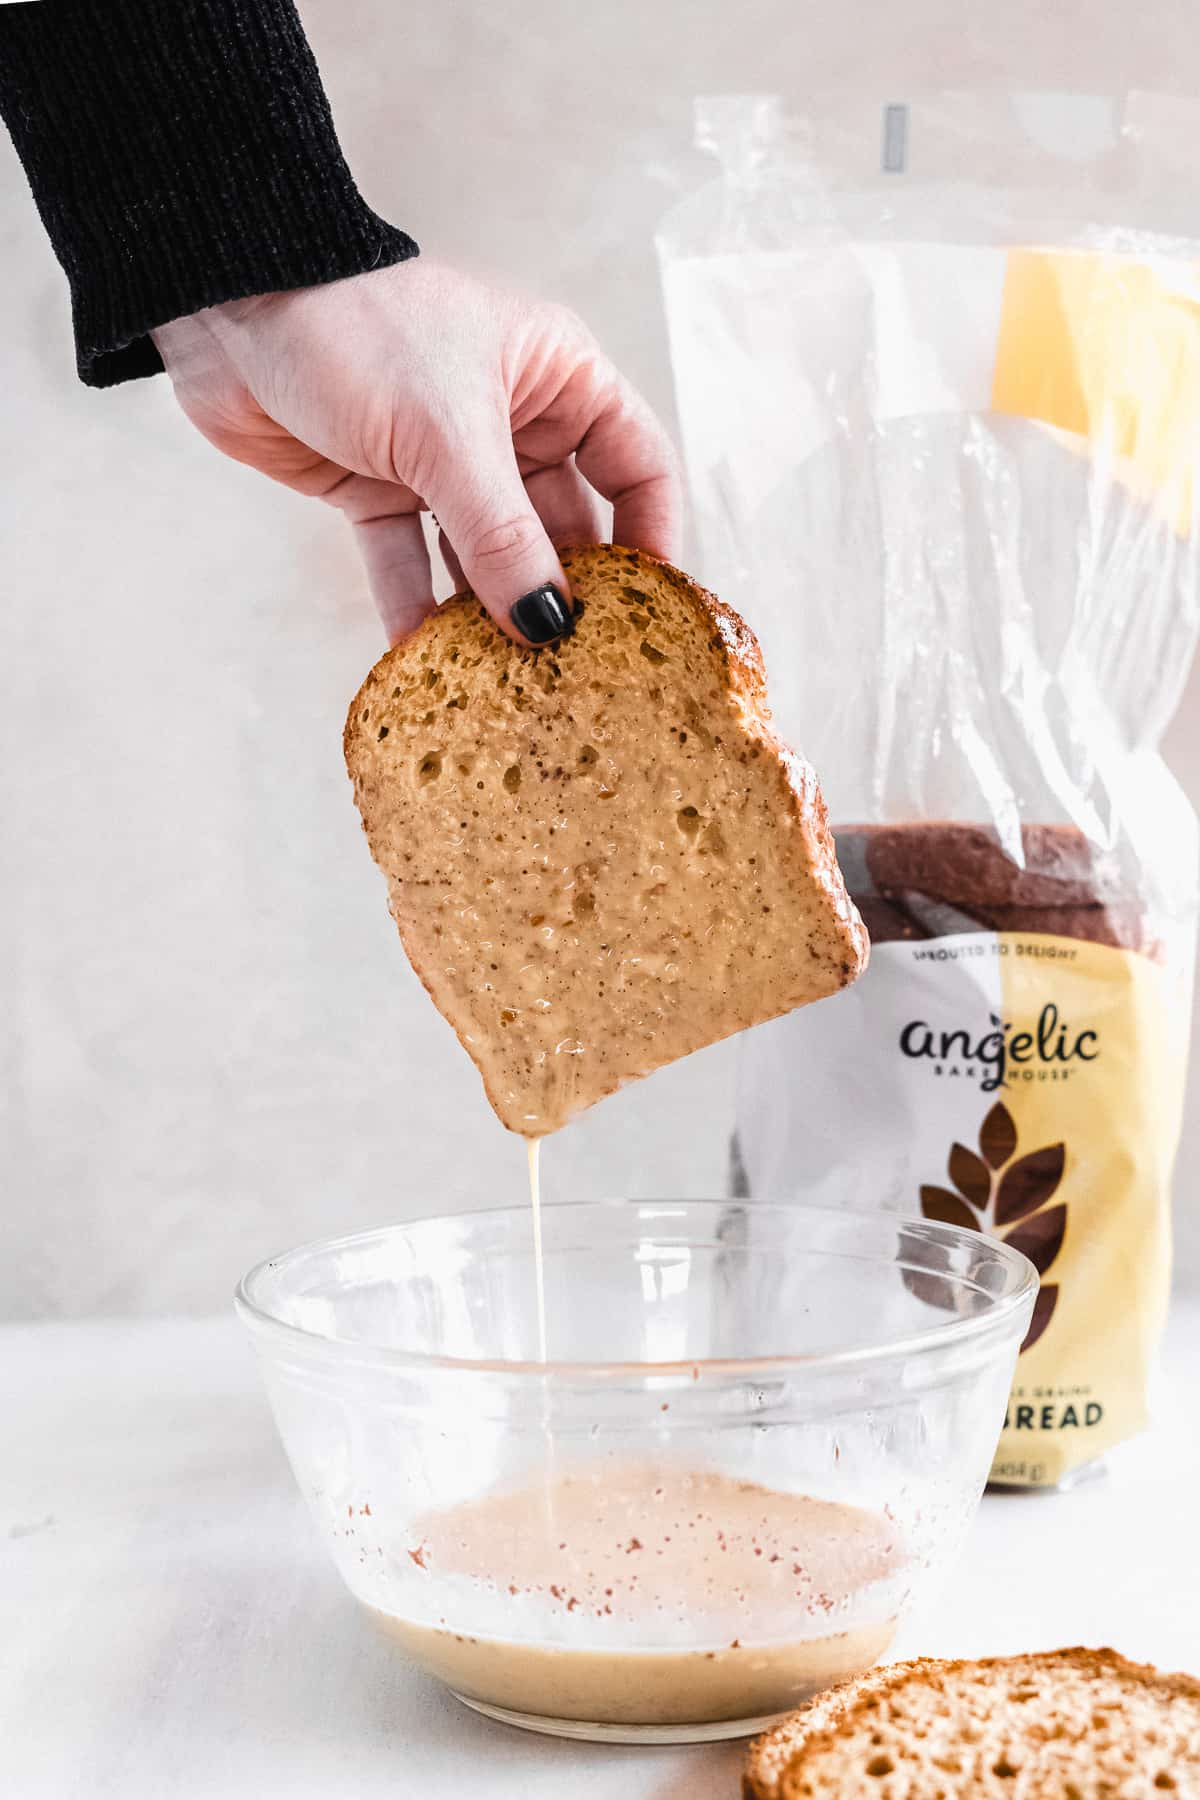 Side view image of a hand holding a slice of bread after being dunked into a bowl below.